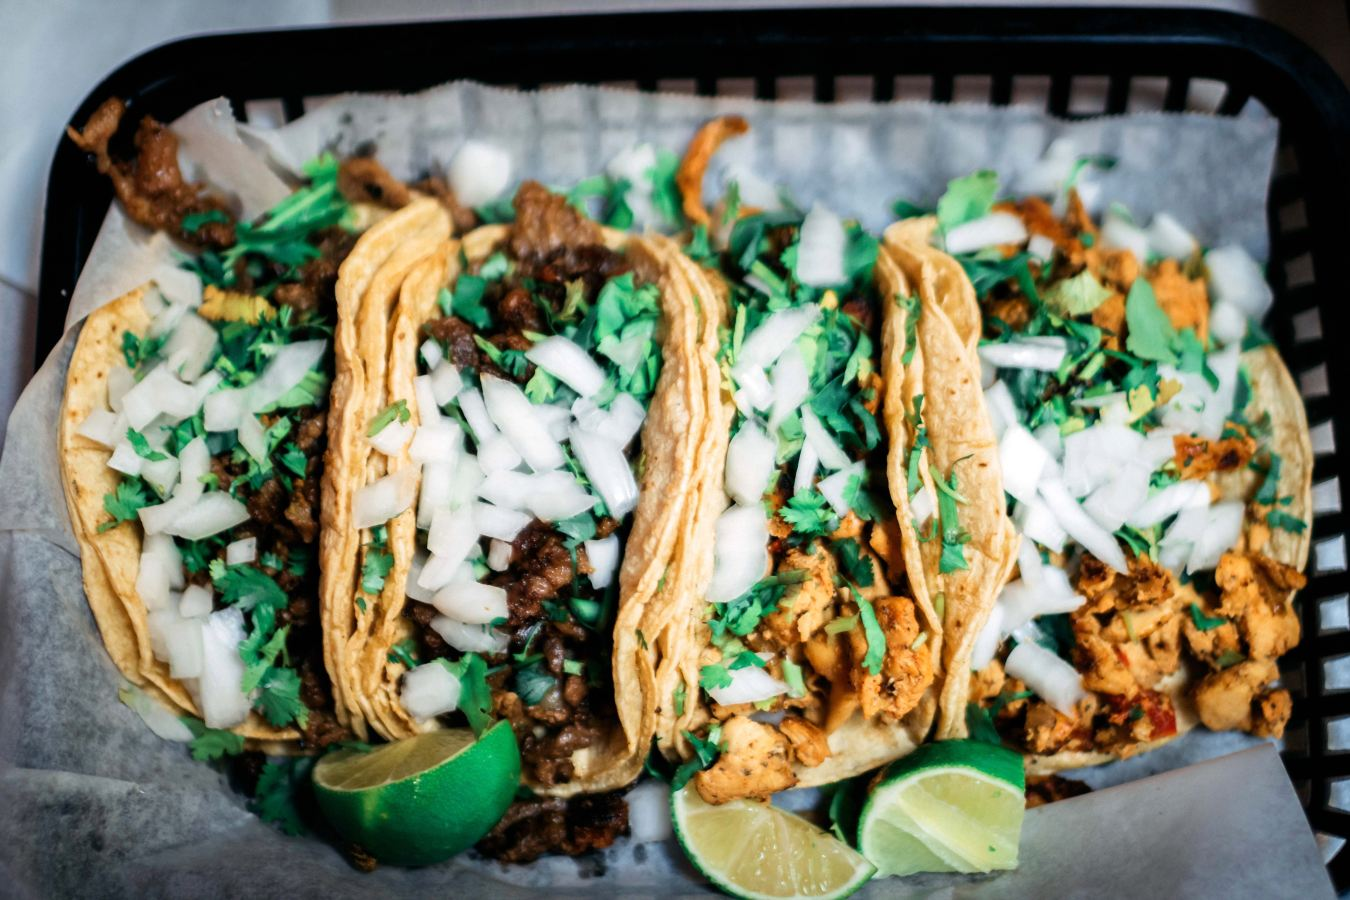 spread smiles with tacos in a basket